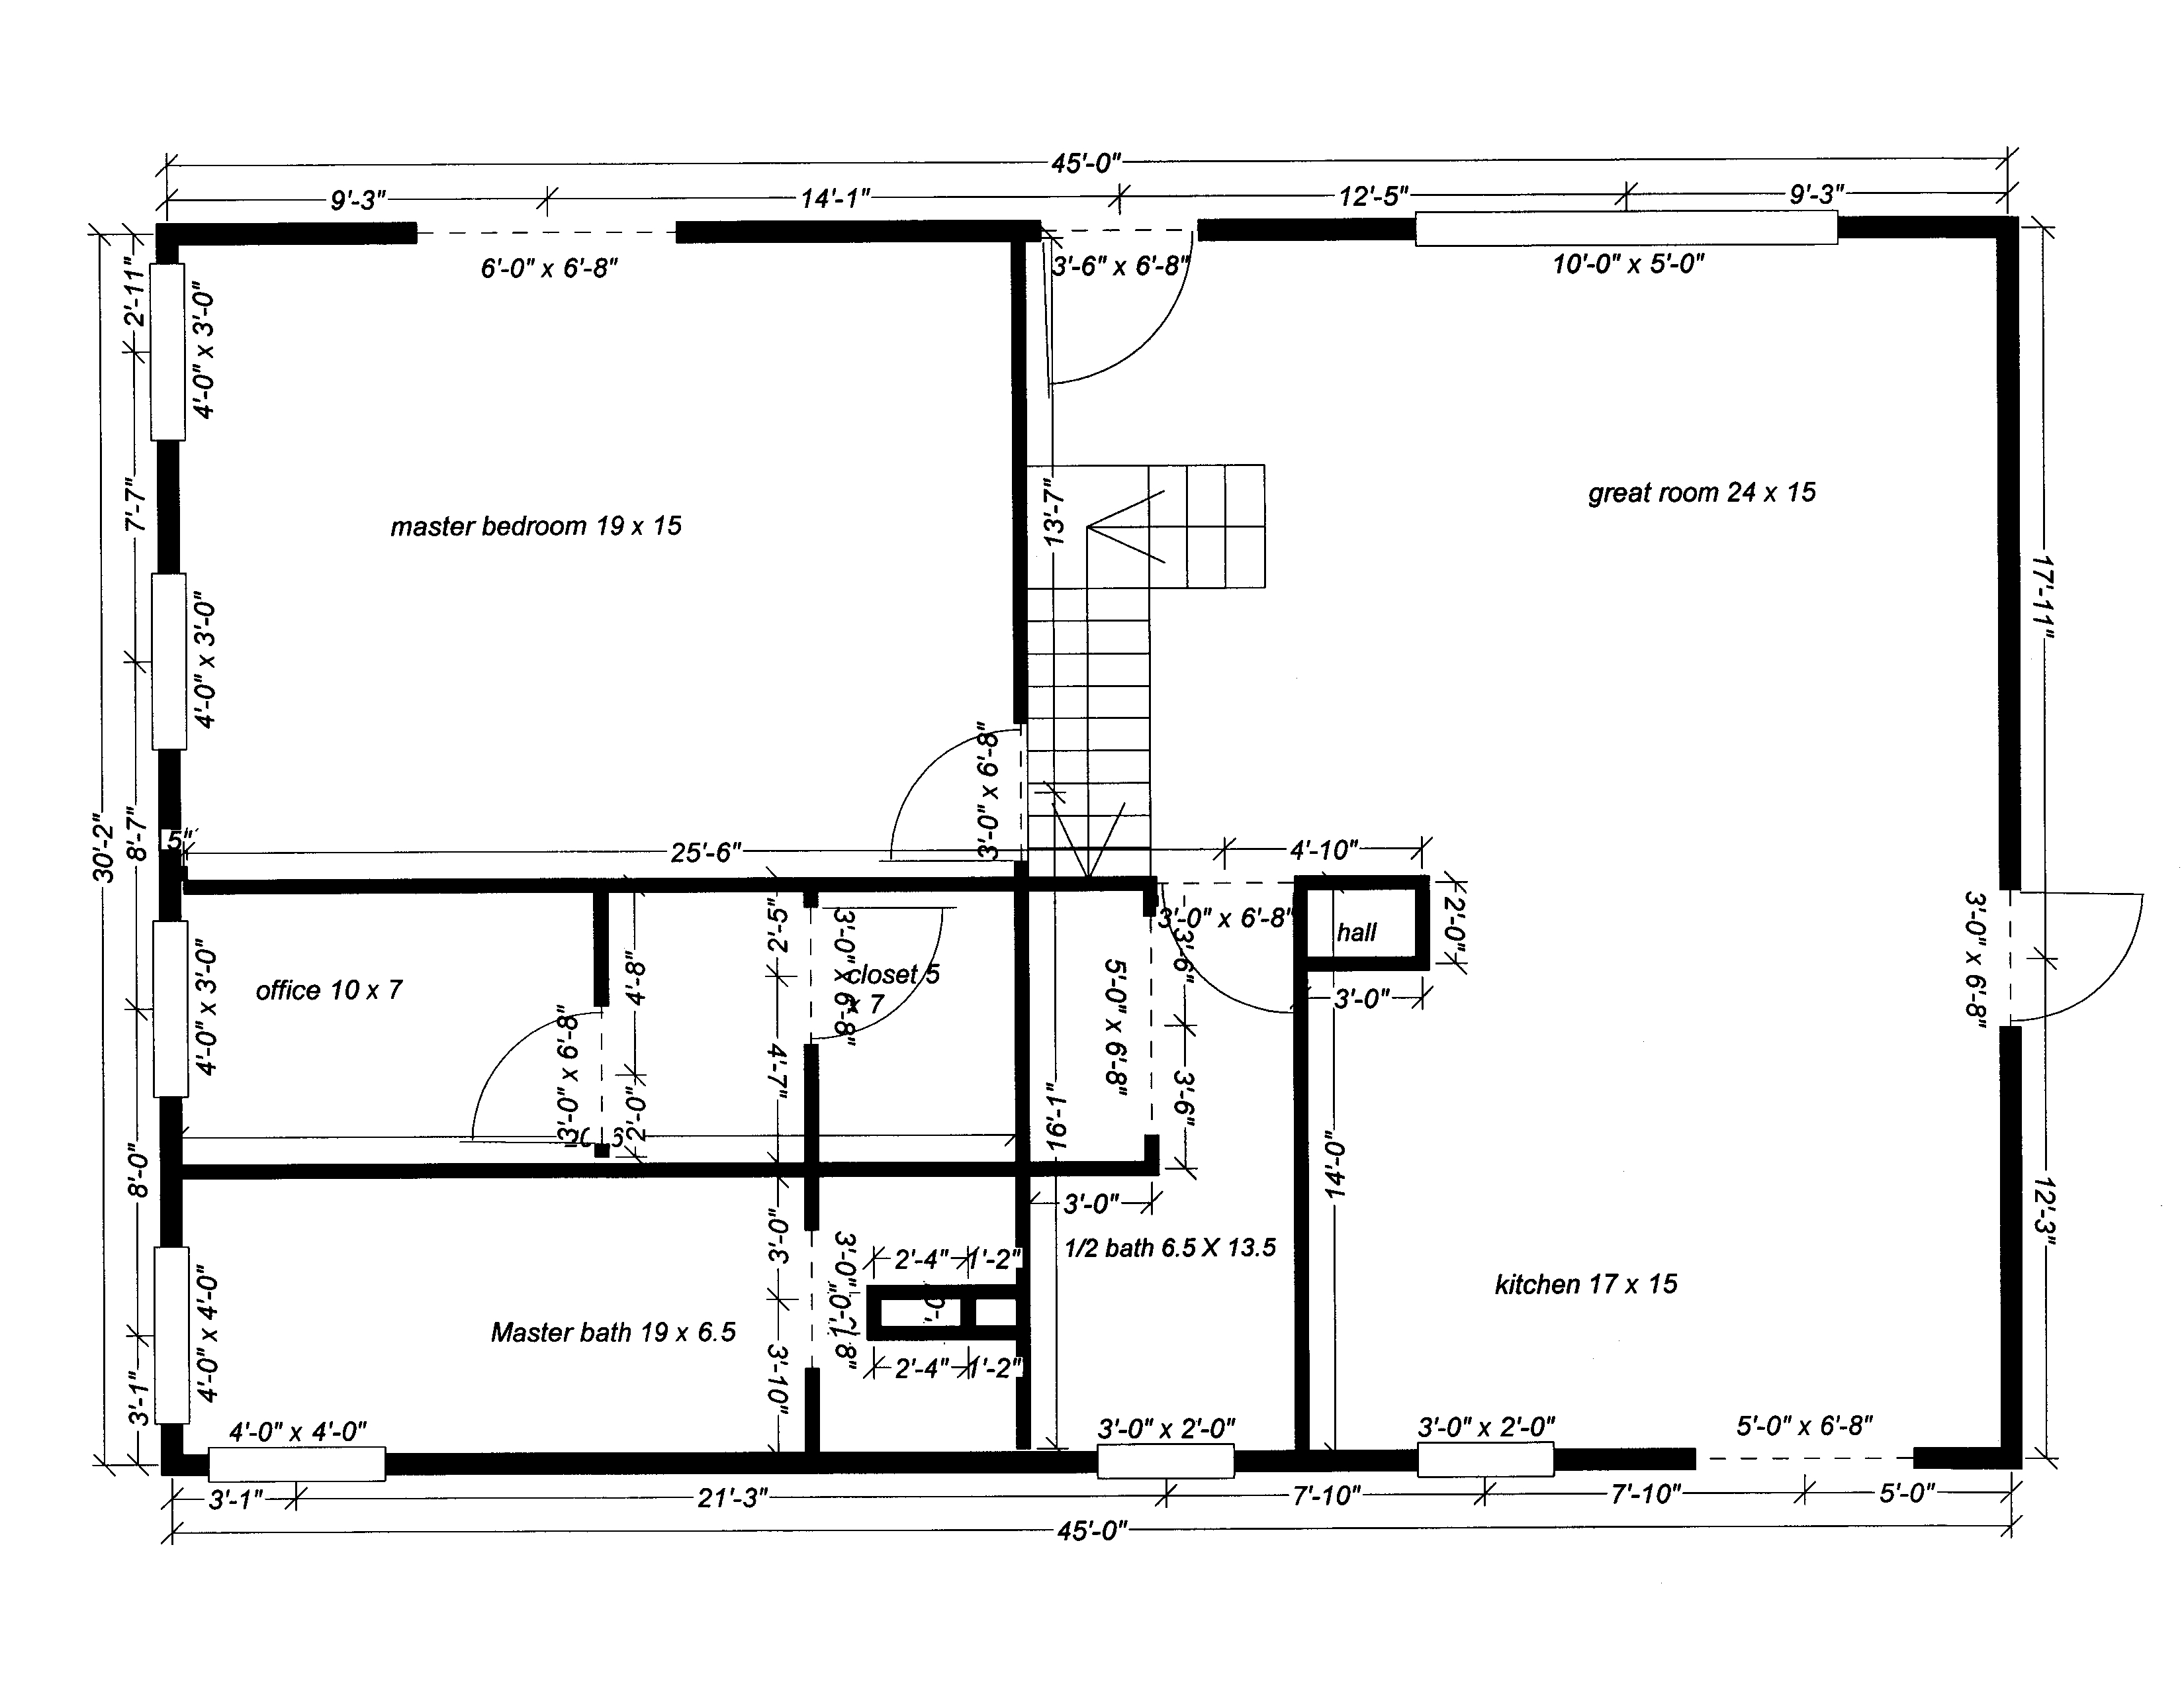 floor plan house design amazing unique shaped home design electrical floor plans for house house design ideas